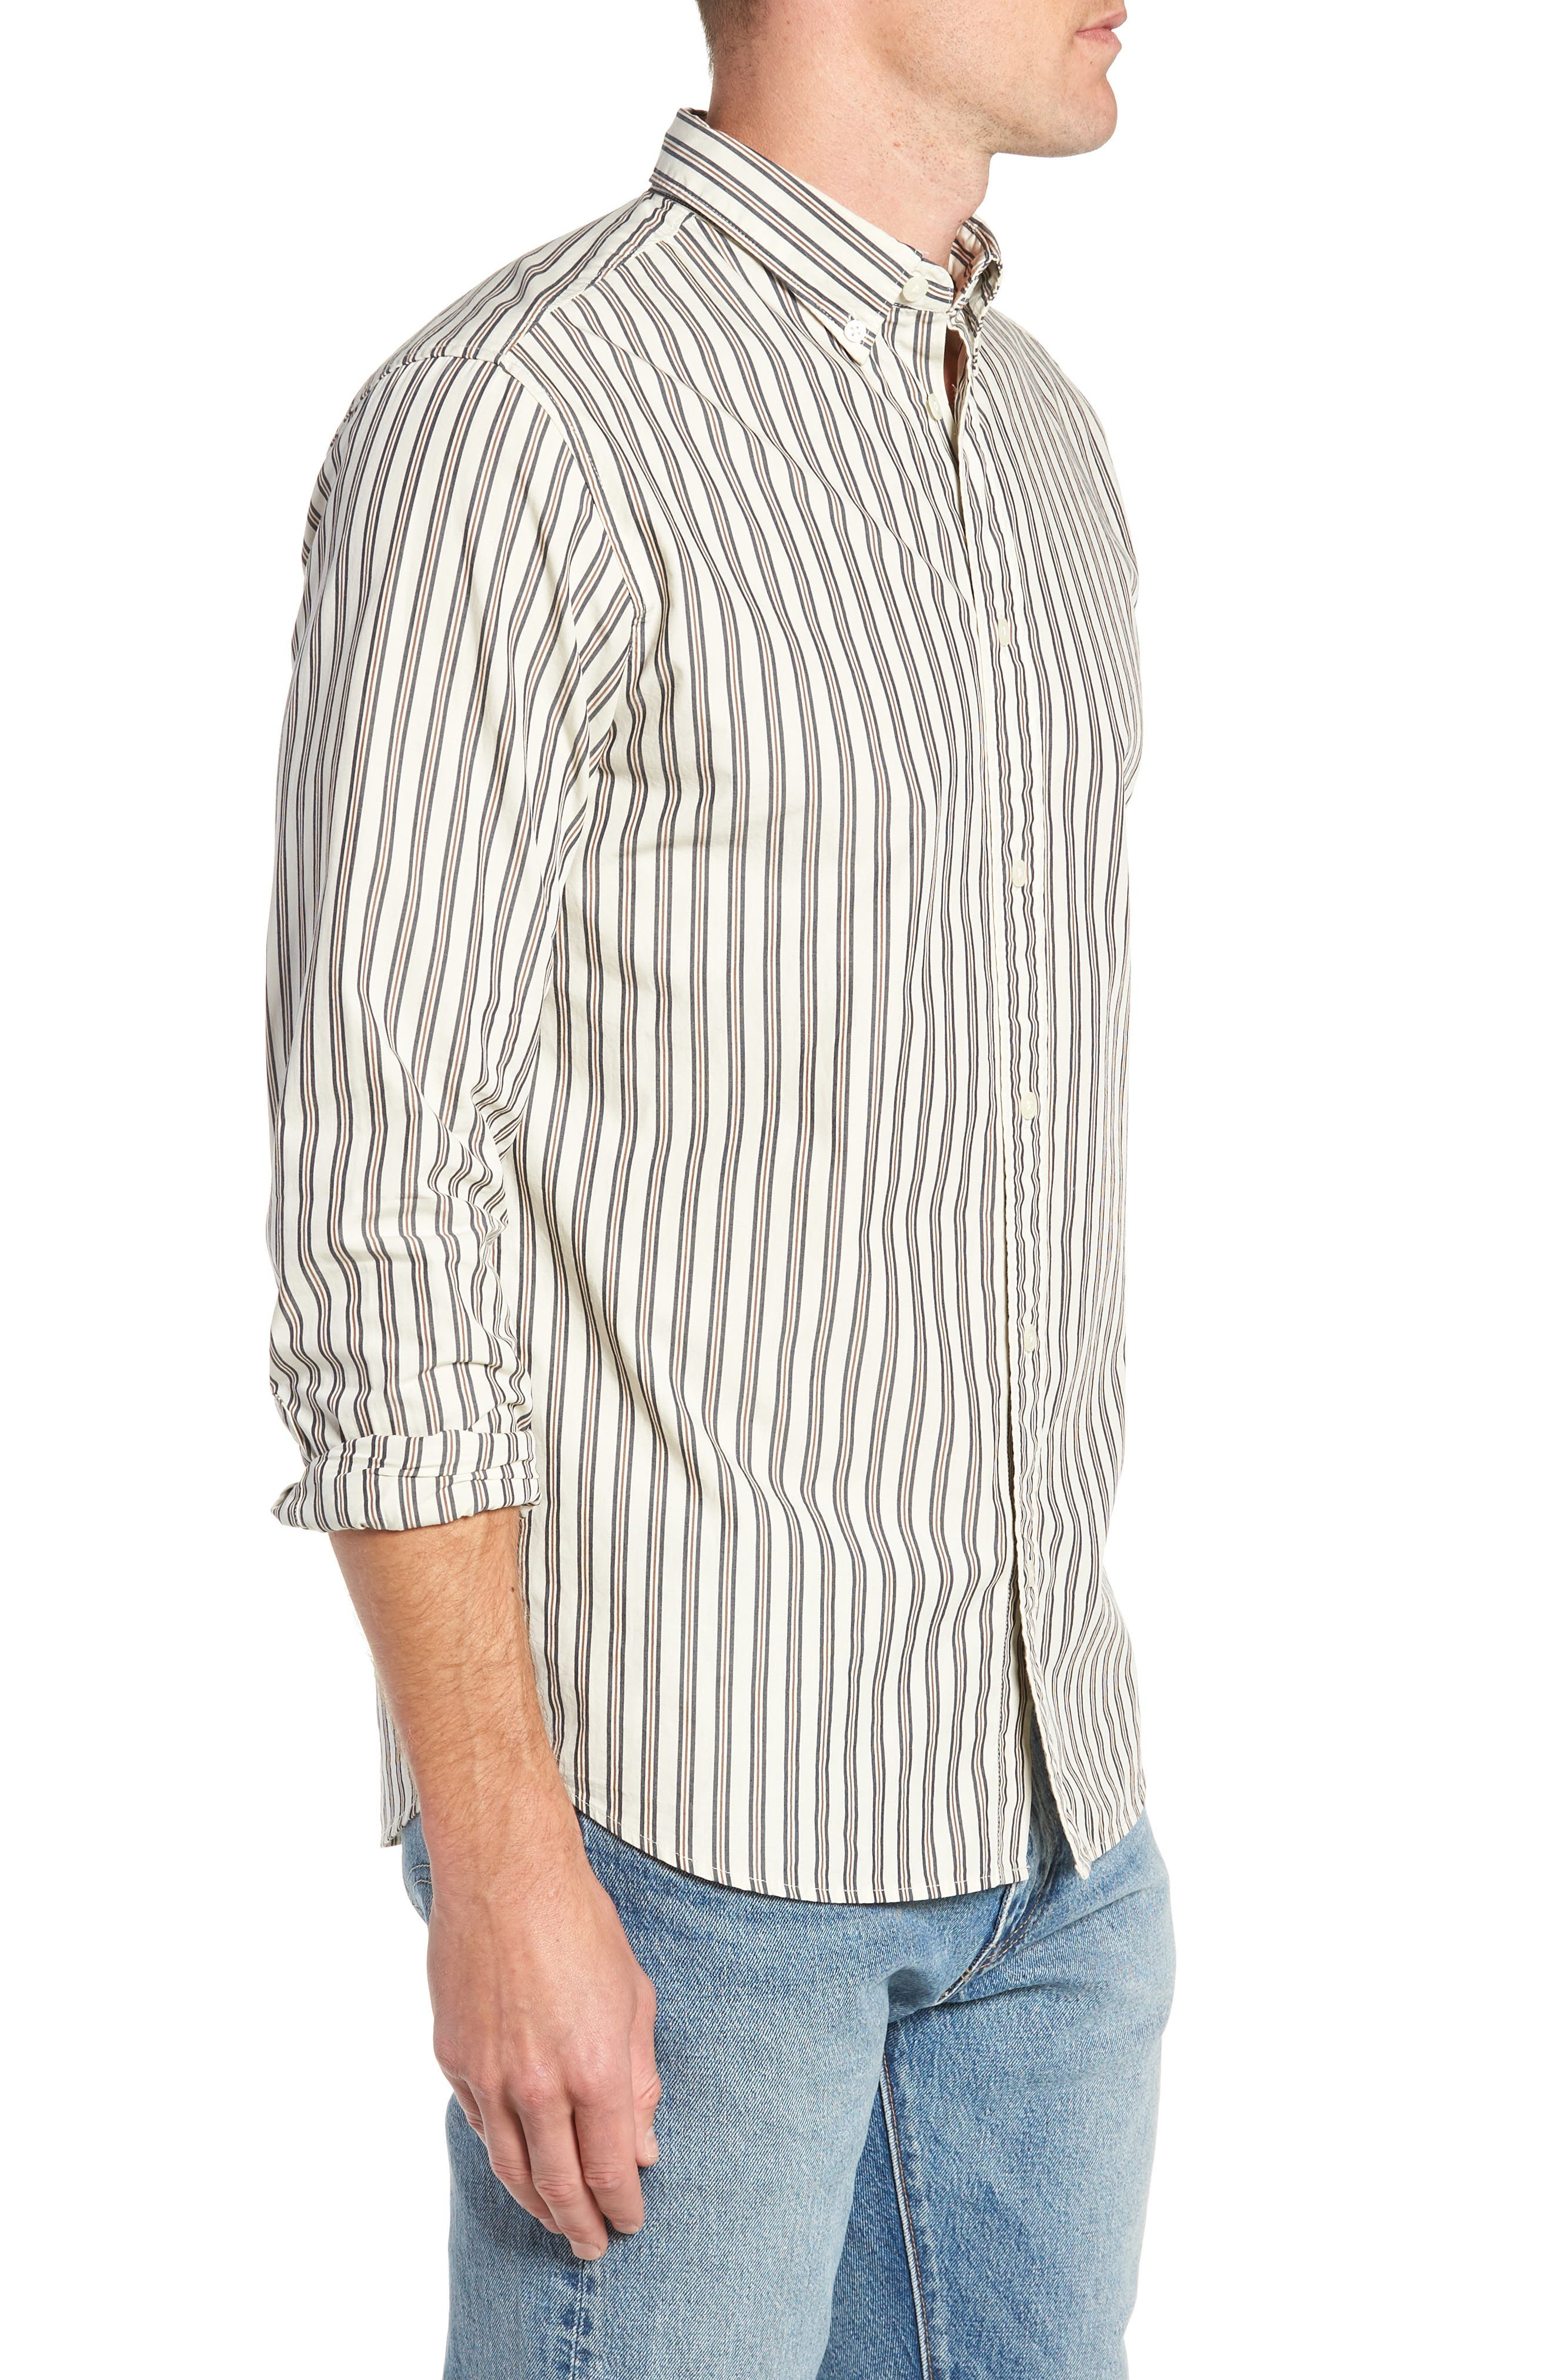 Carl Regular Fit Stripe Sport Shirt,                             Alternate thumbnail 4, color,                             OYSTER GREY STRIPES